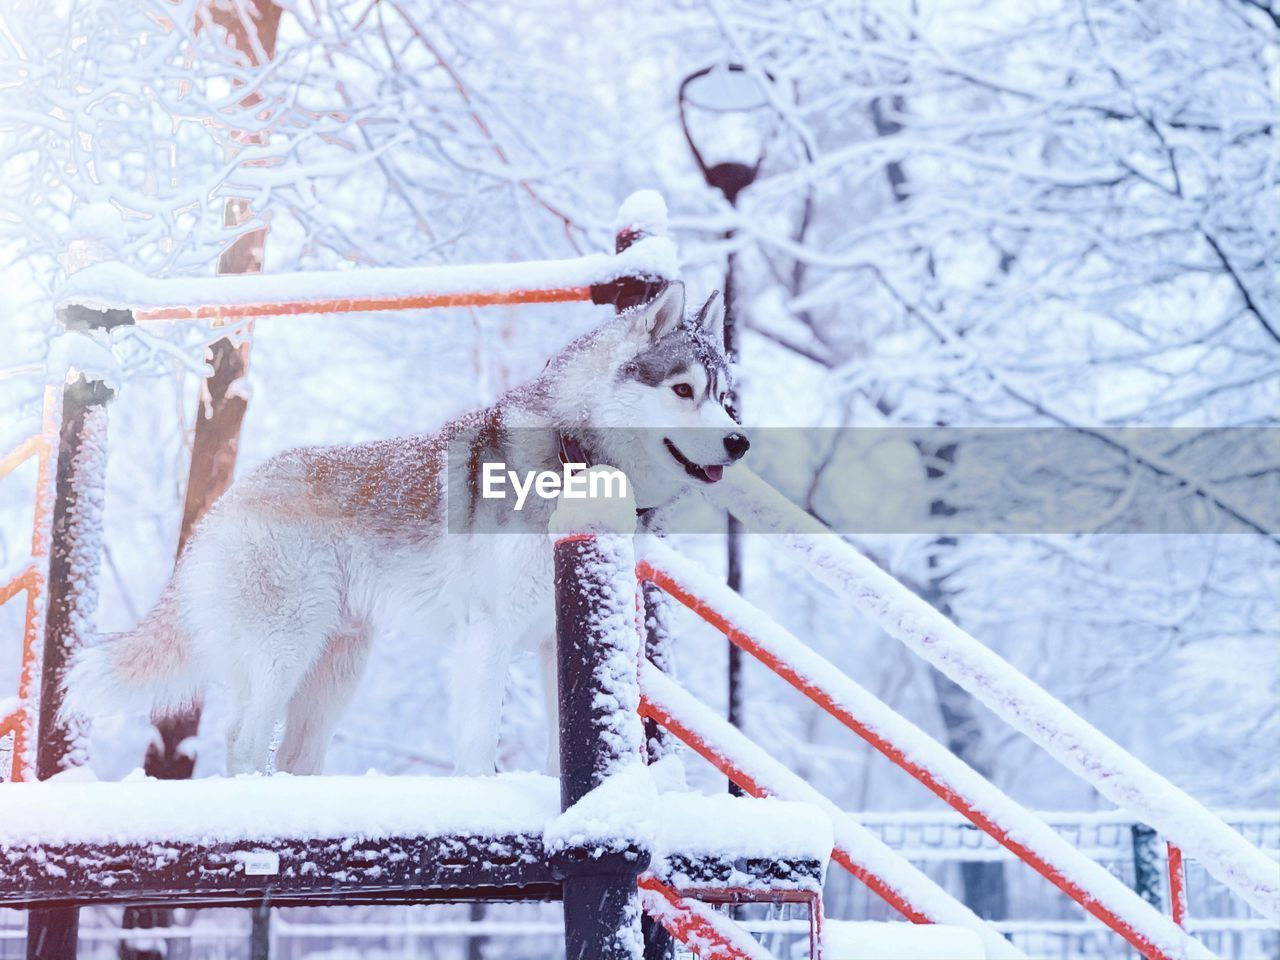 winter, snow, cold temperature, tree, animal themes, mammal, animal, one animal, nature, branch, vertebrate, plant, day, animal wildlife, animals in the wild, no people, beauty in nature, white color, frozen, snowing